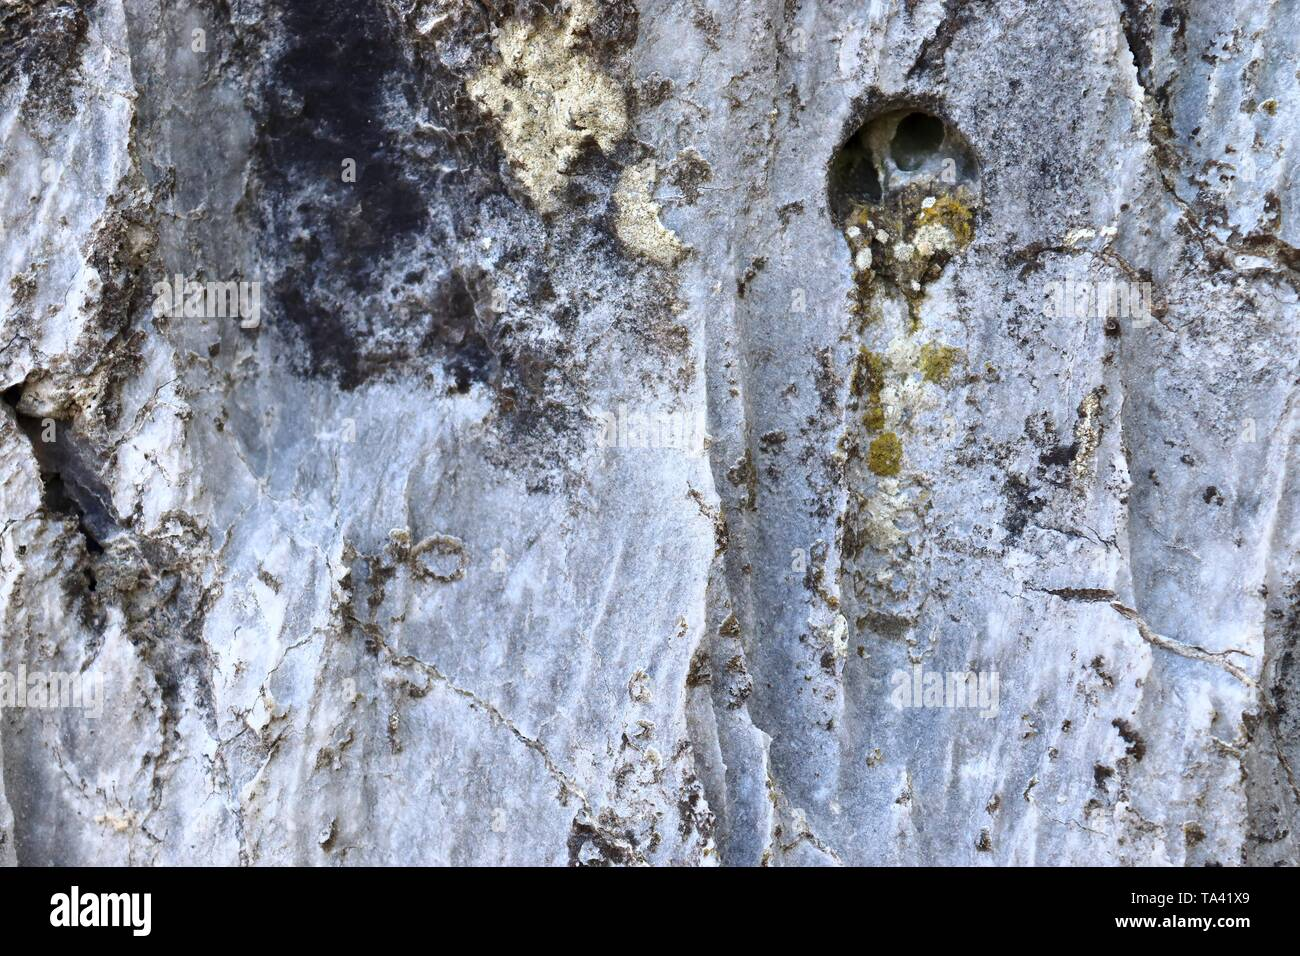 Detailed close up texture shots of the lime mountains surface in northern germany - Stock Image